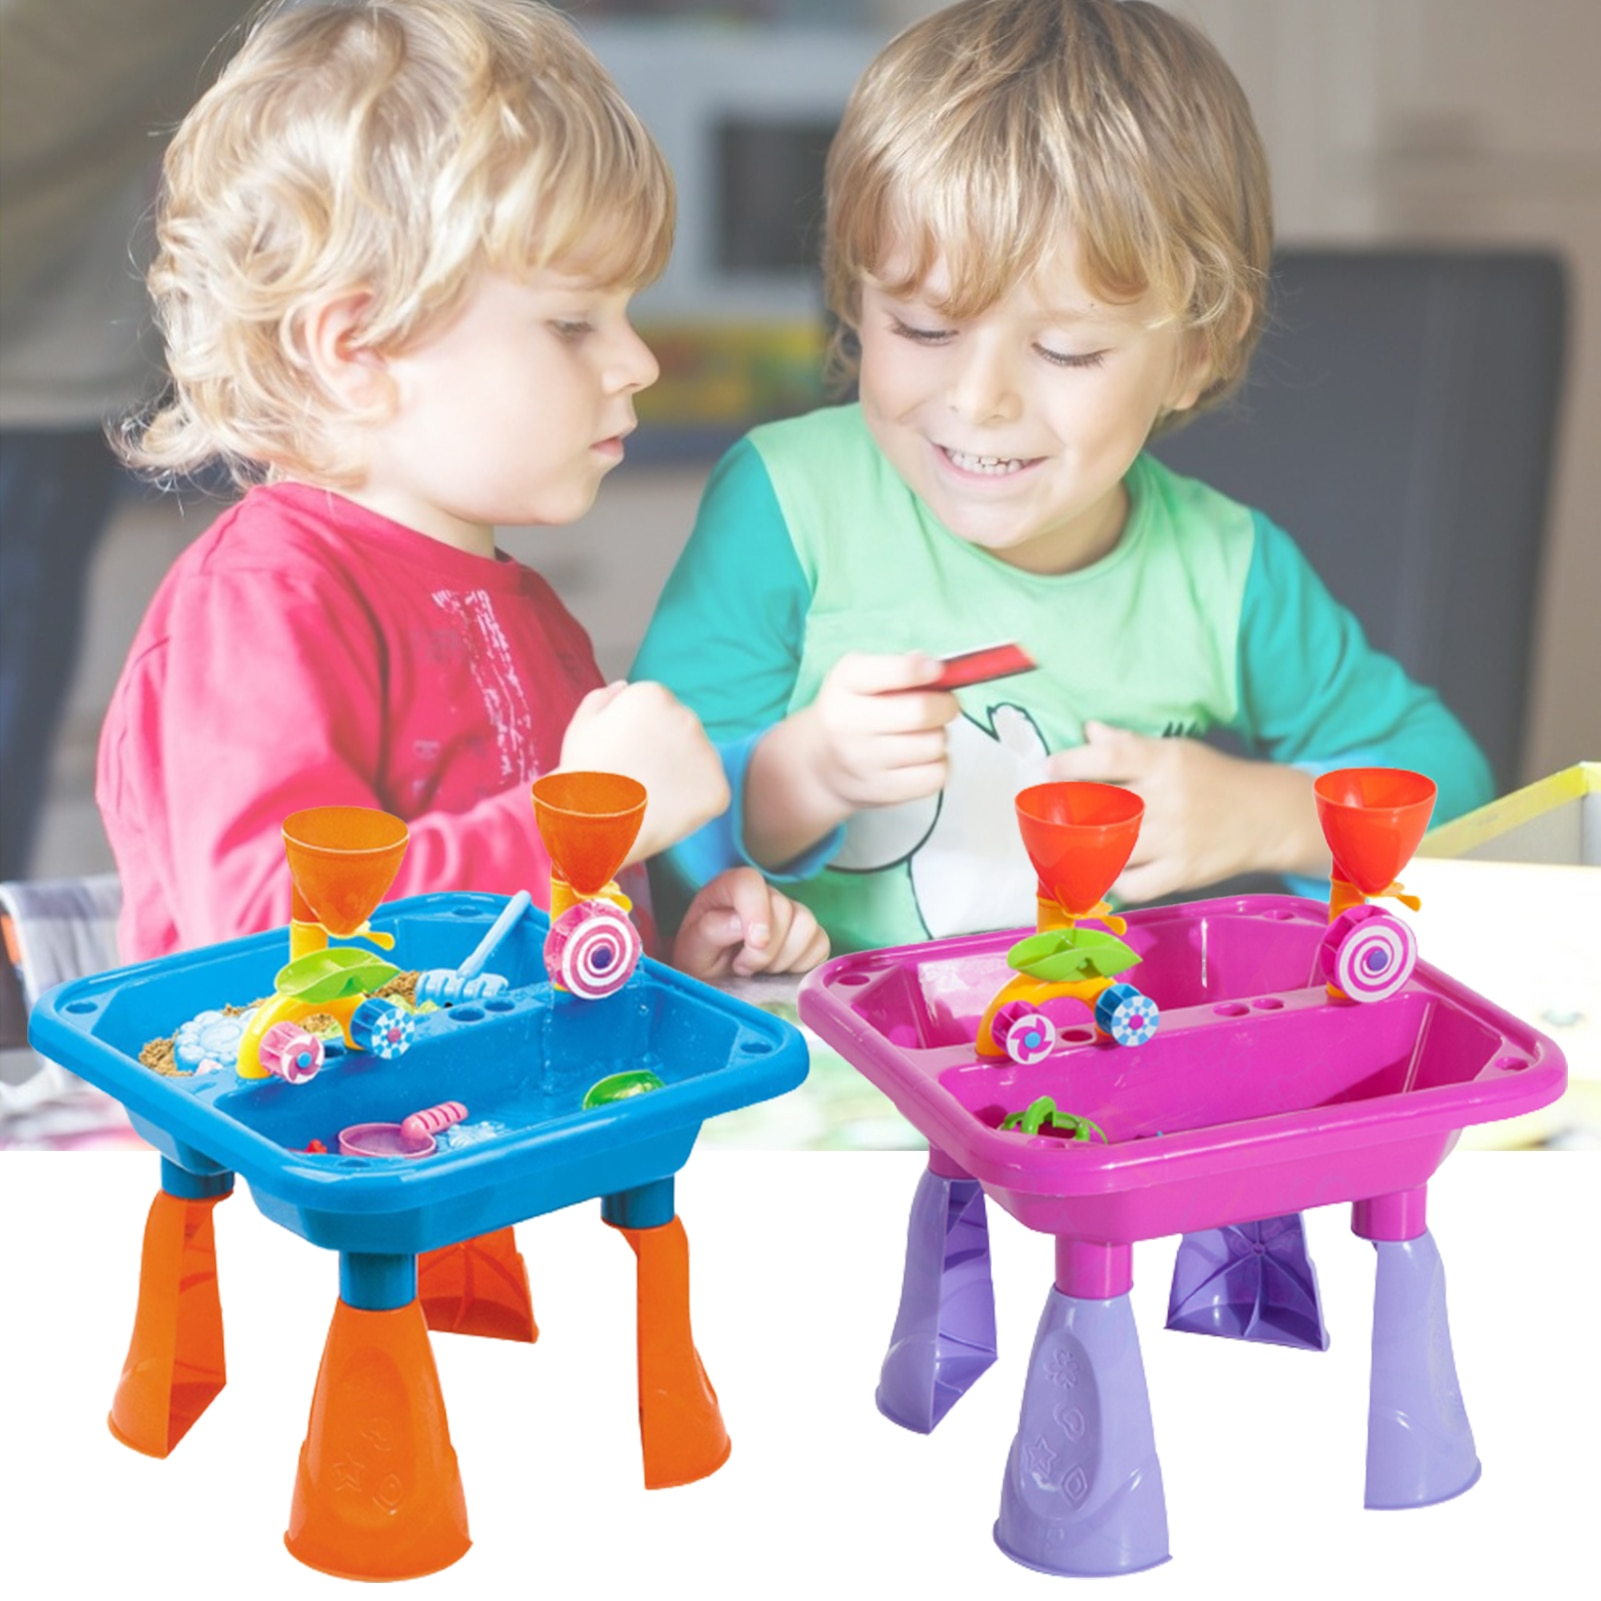 Children Beach Table Sand Play Toys Set Baby Sand Dredging Toy Beach Sand Toy Set Summer Outdoor Beach Seaside Shovel Tools Toy starry sky sand beach toy 18 piece sand set magic space clay sand puzzle power toys